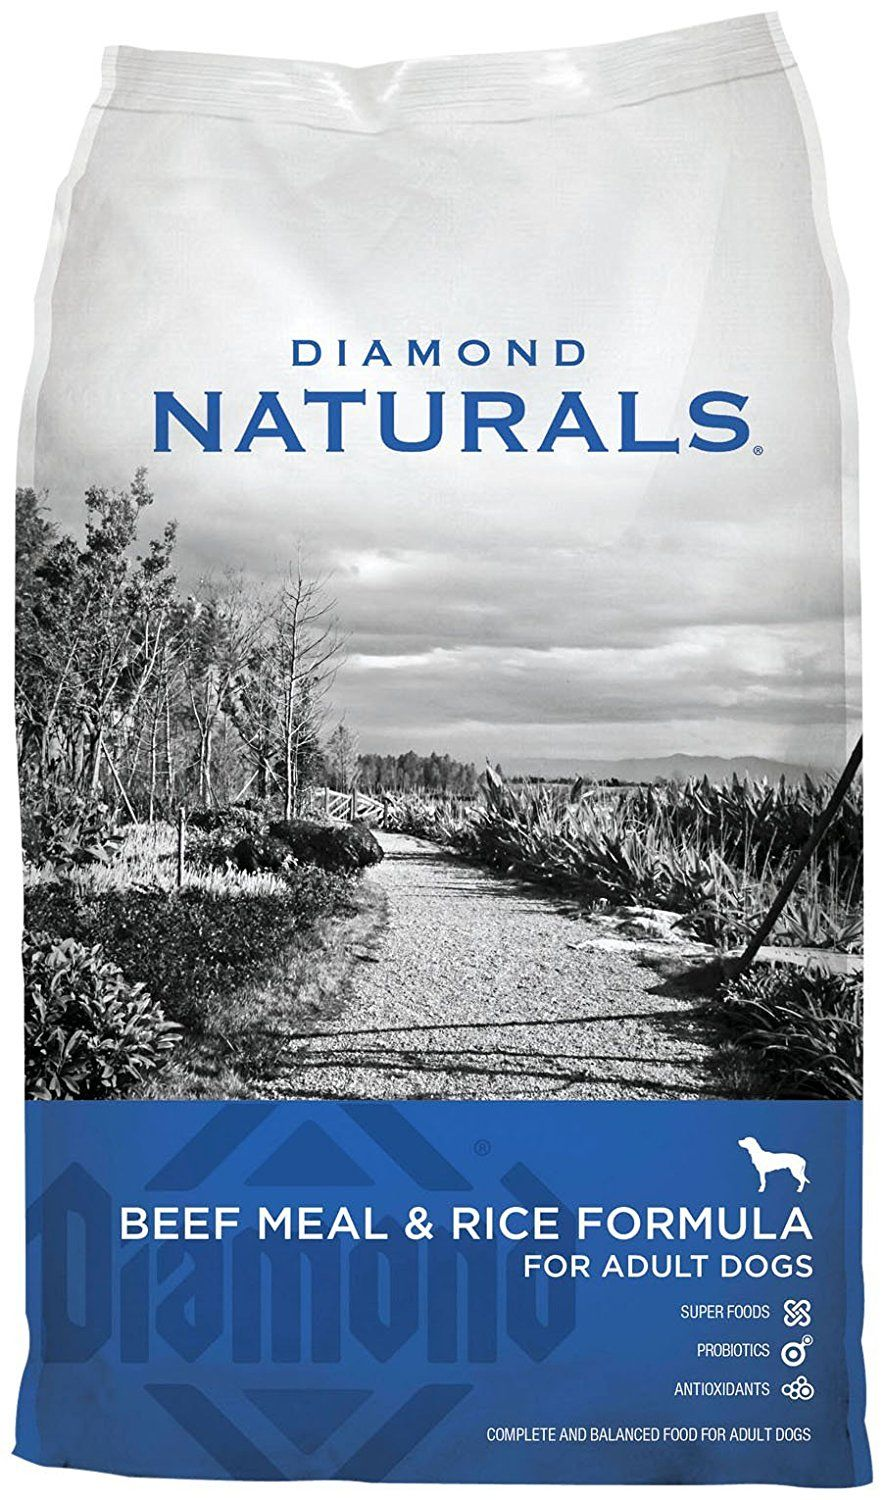 Diamond naturals dry food for adult dog beef